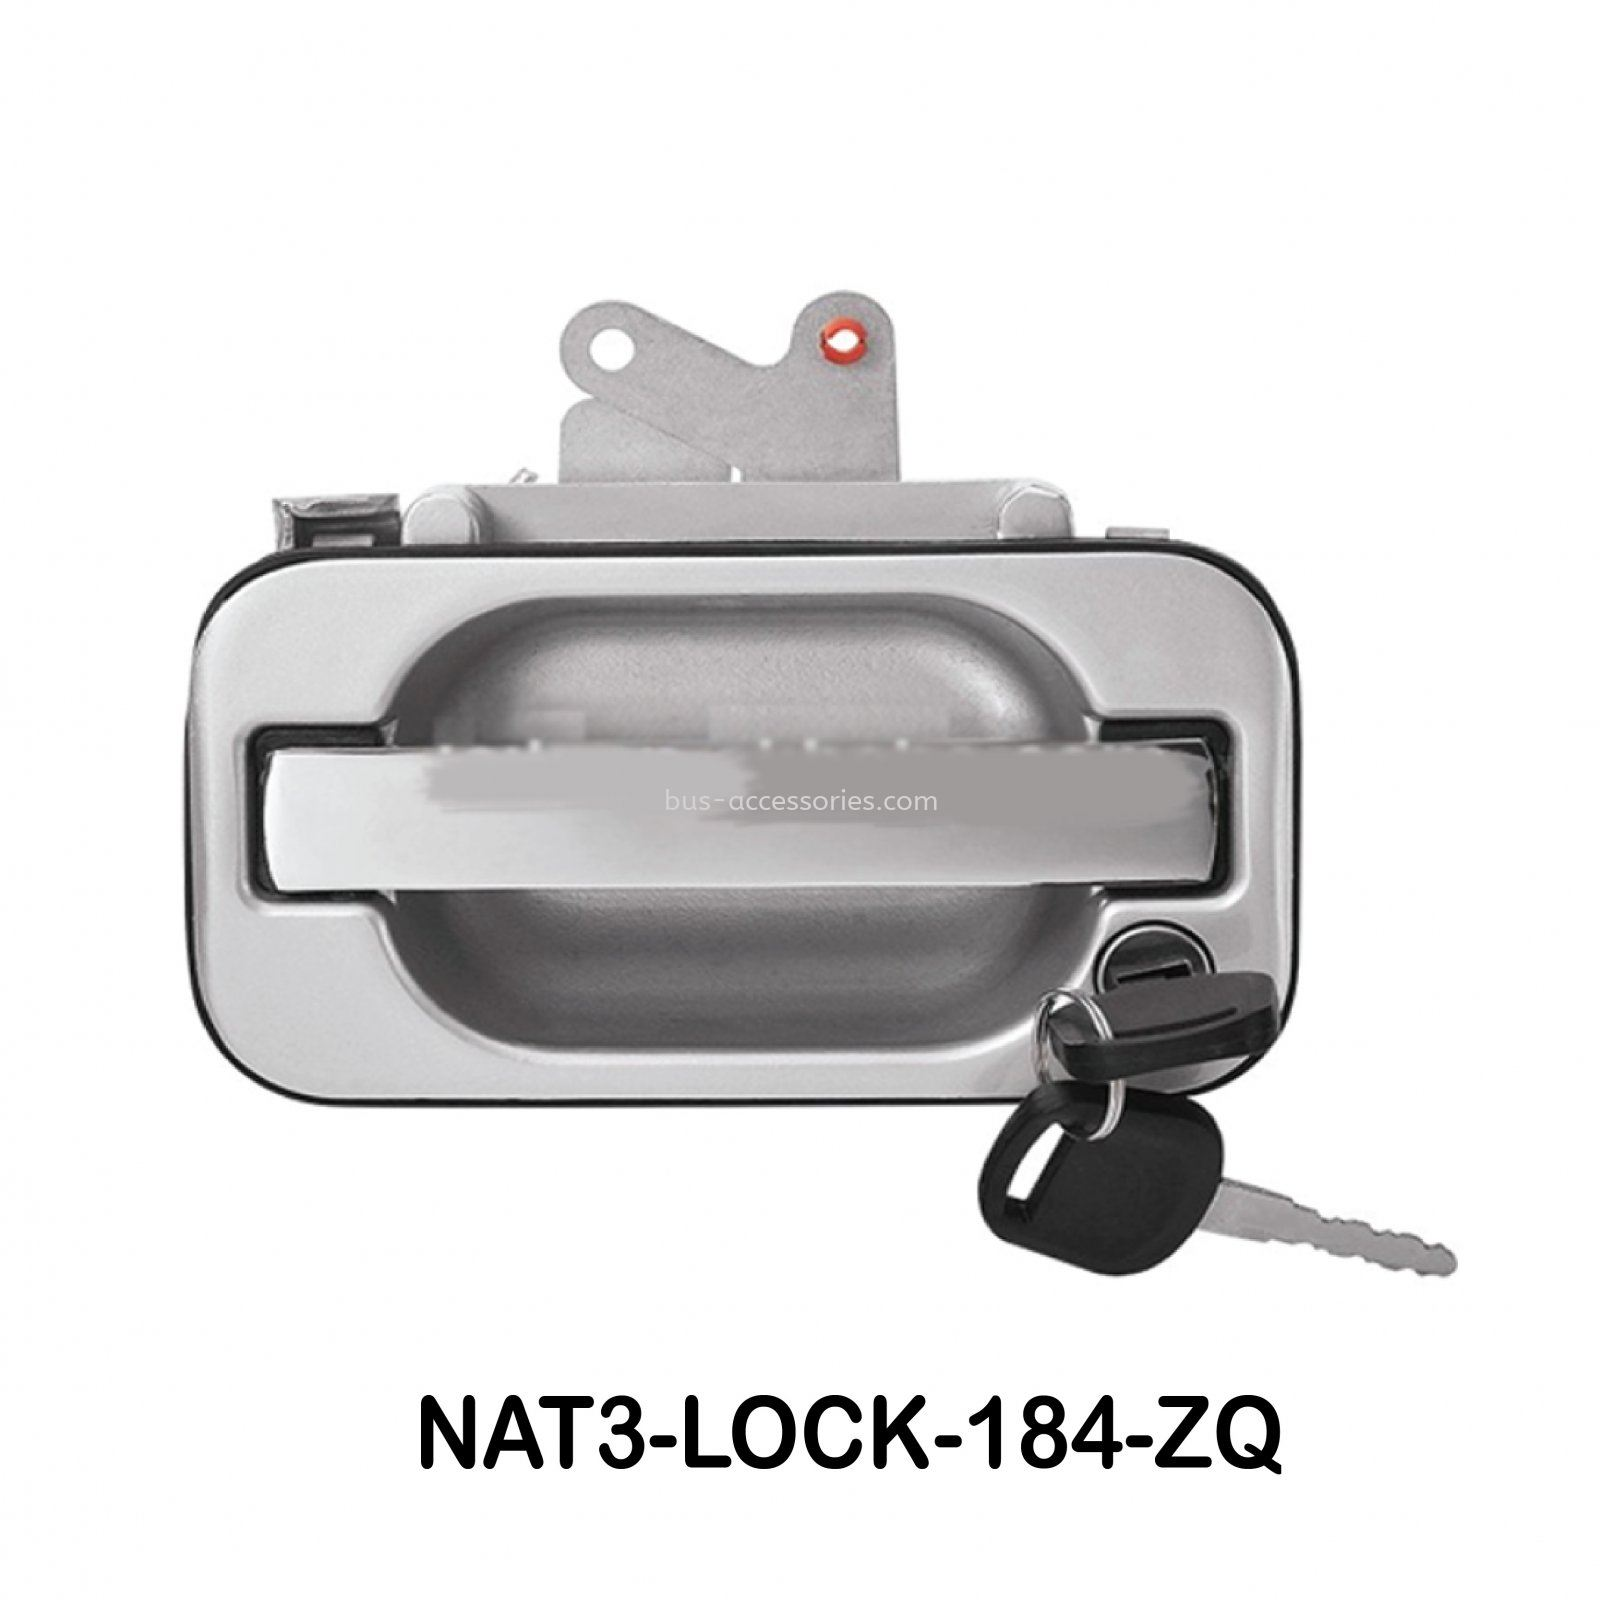 LUGGAGE COMPARTMENT LOCK